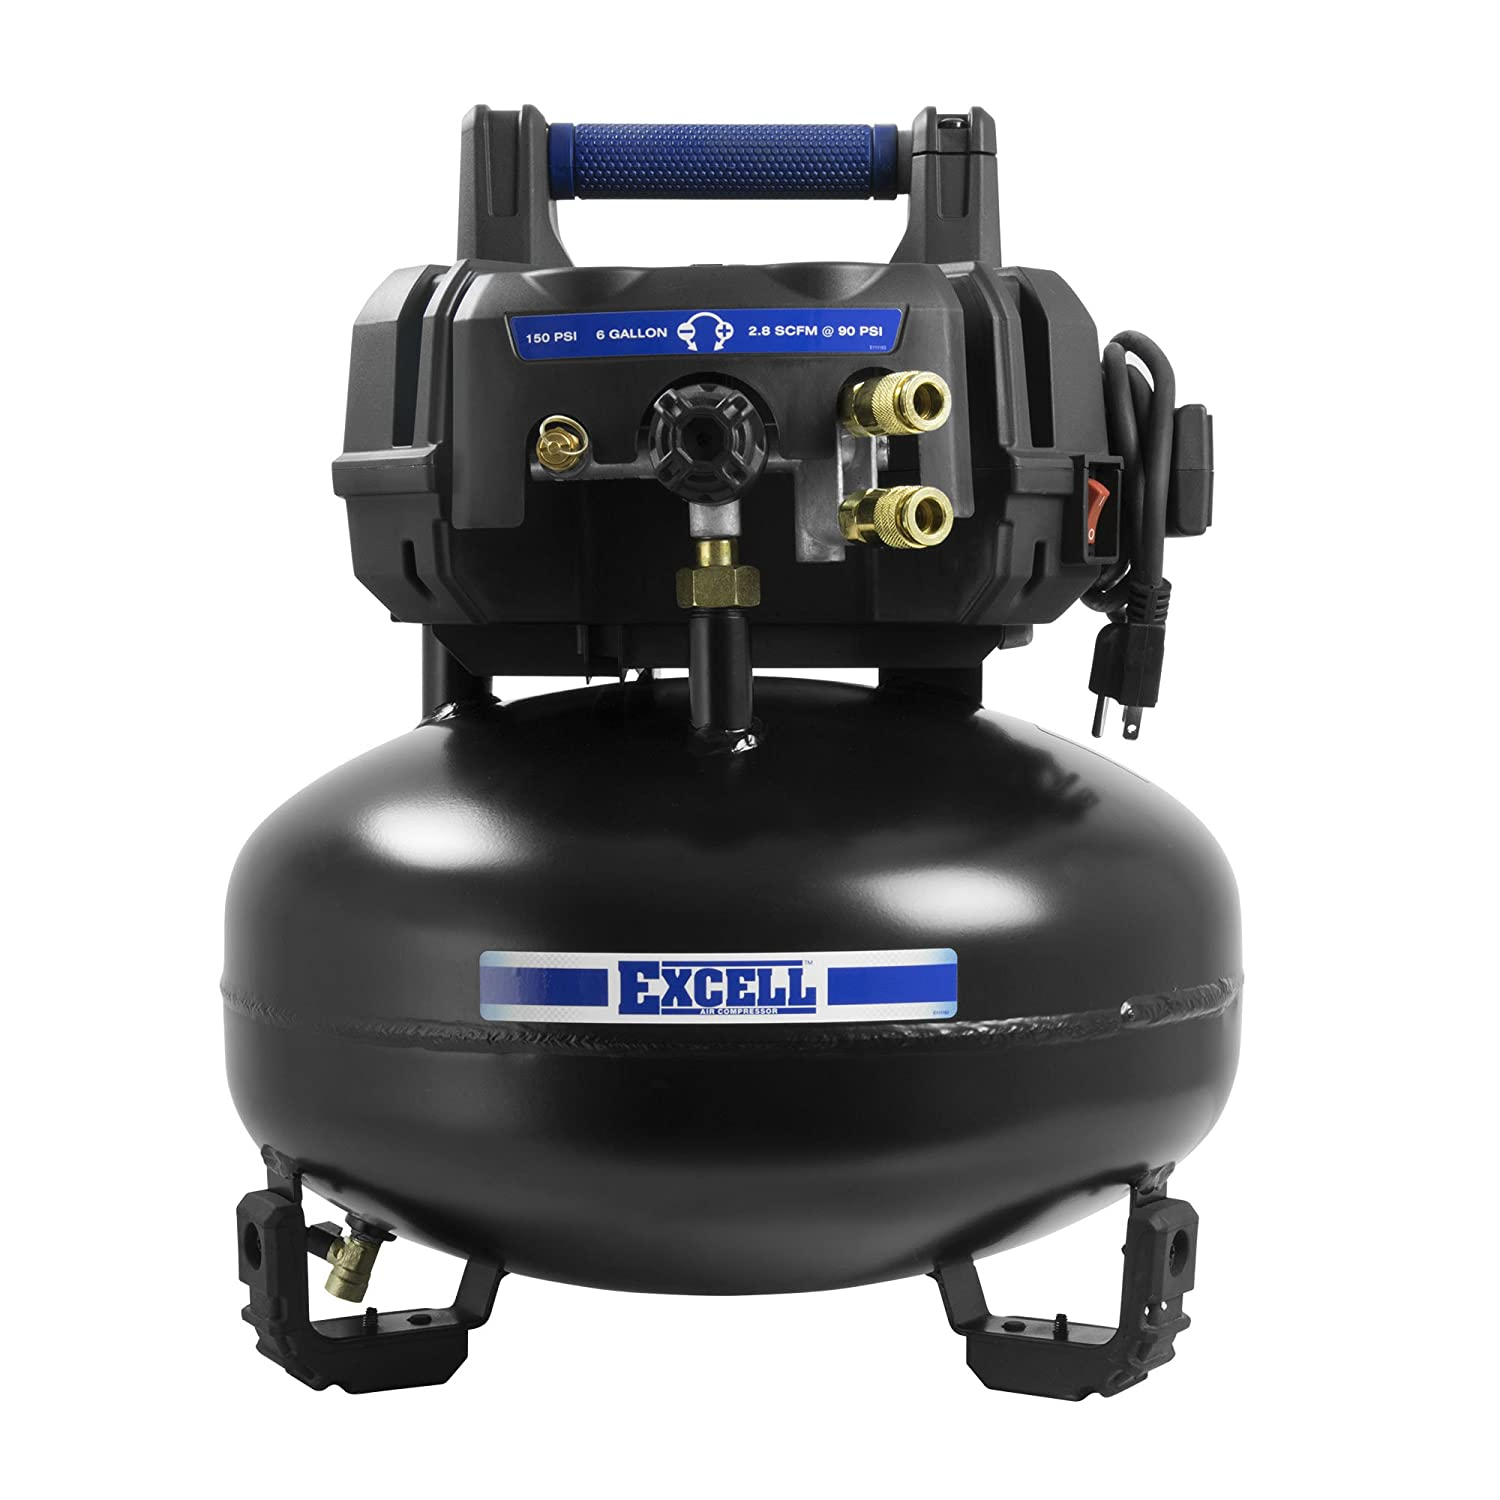 Excell U256PPE Excel Pancake Air Compressor EXCELL Air Compressors